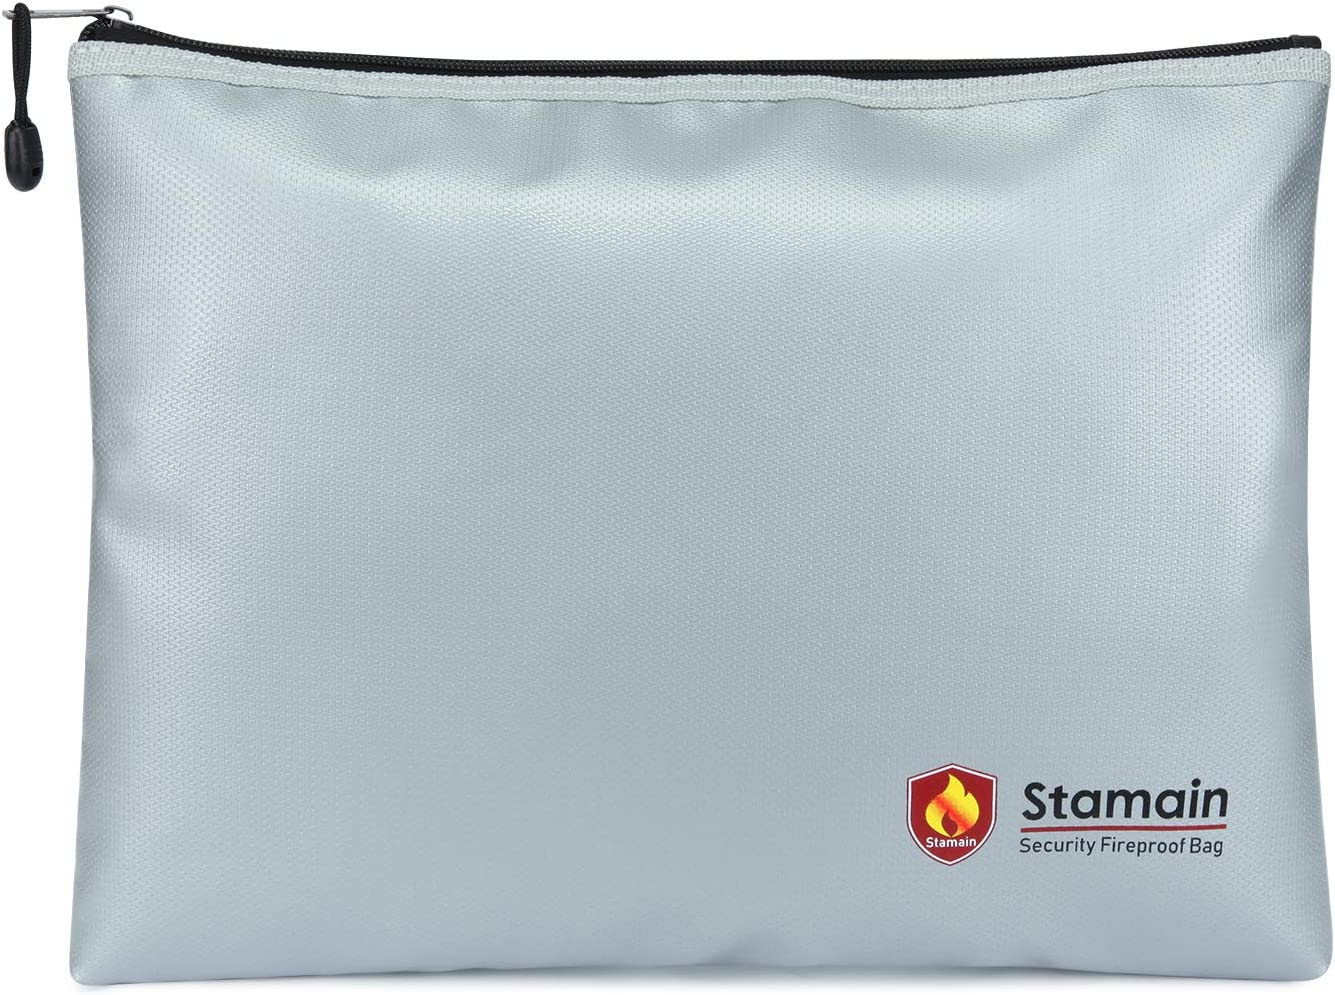 """Fireproof Safe Fireproof Document Bag Money Bag, Stamain Large Fireproof Bag(13.4""""x 9.8"""") with Zipper, Fire and Water Resistant Fire Safe Bag Home Safe for Money, Document, File, Valuables(Silver)"""